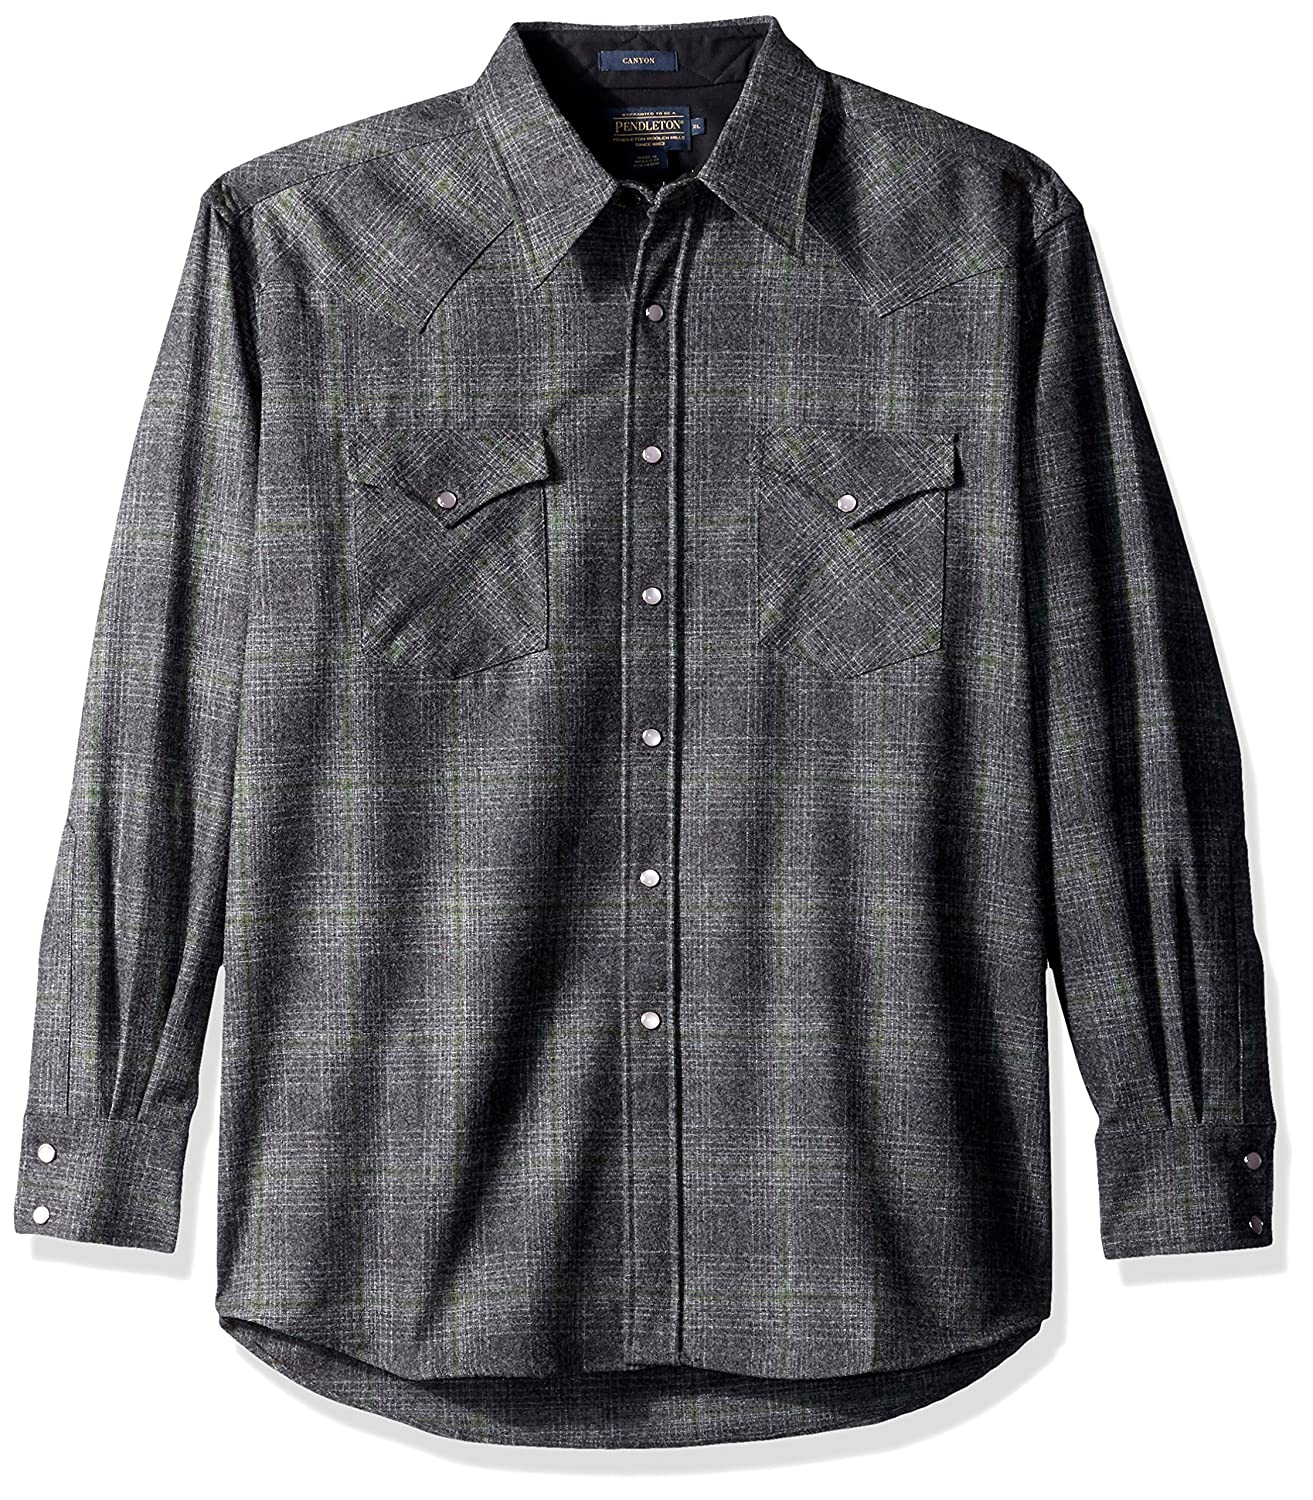 Pendleton メンズ長袖キャニオンシャツ B06XPWDC3Q L|Oxford Grey/Sage Ombre Oxford Grey/Sage Ombre L